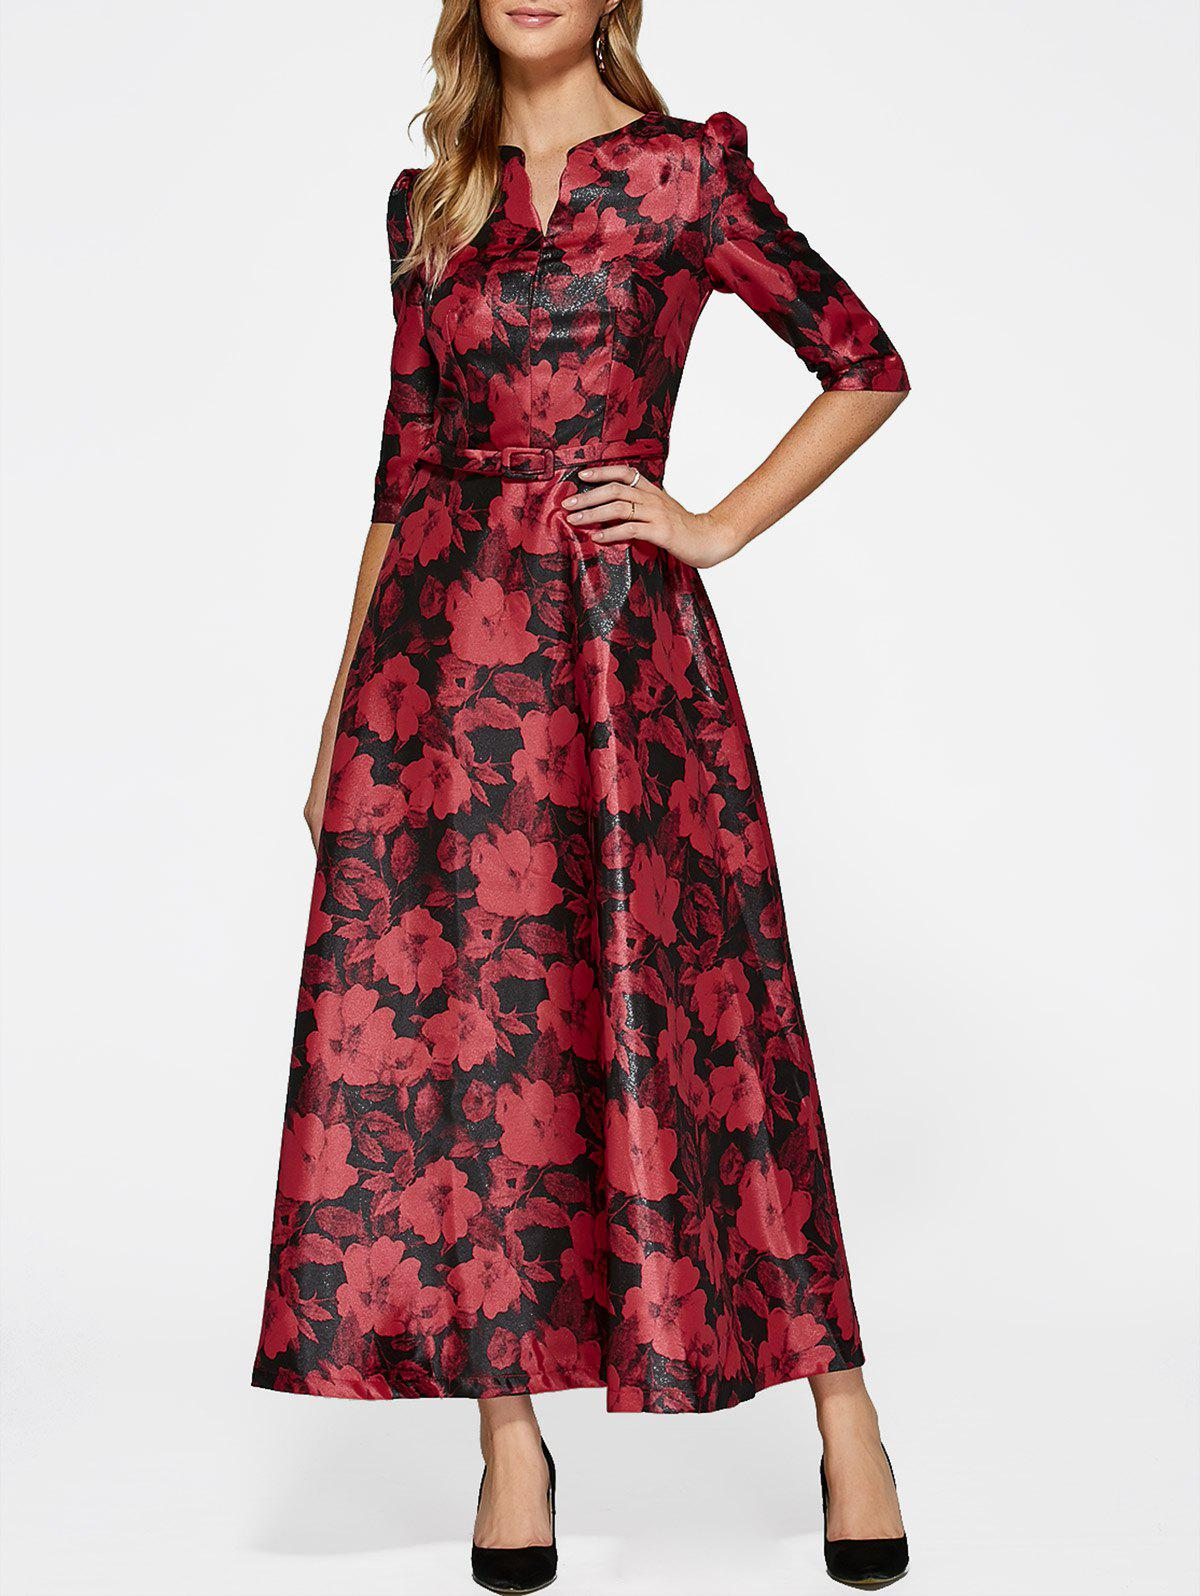 Unique 3/4 Sleeve Maxi Flower Print Vintage Dress